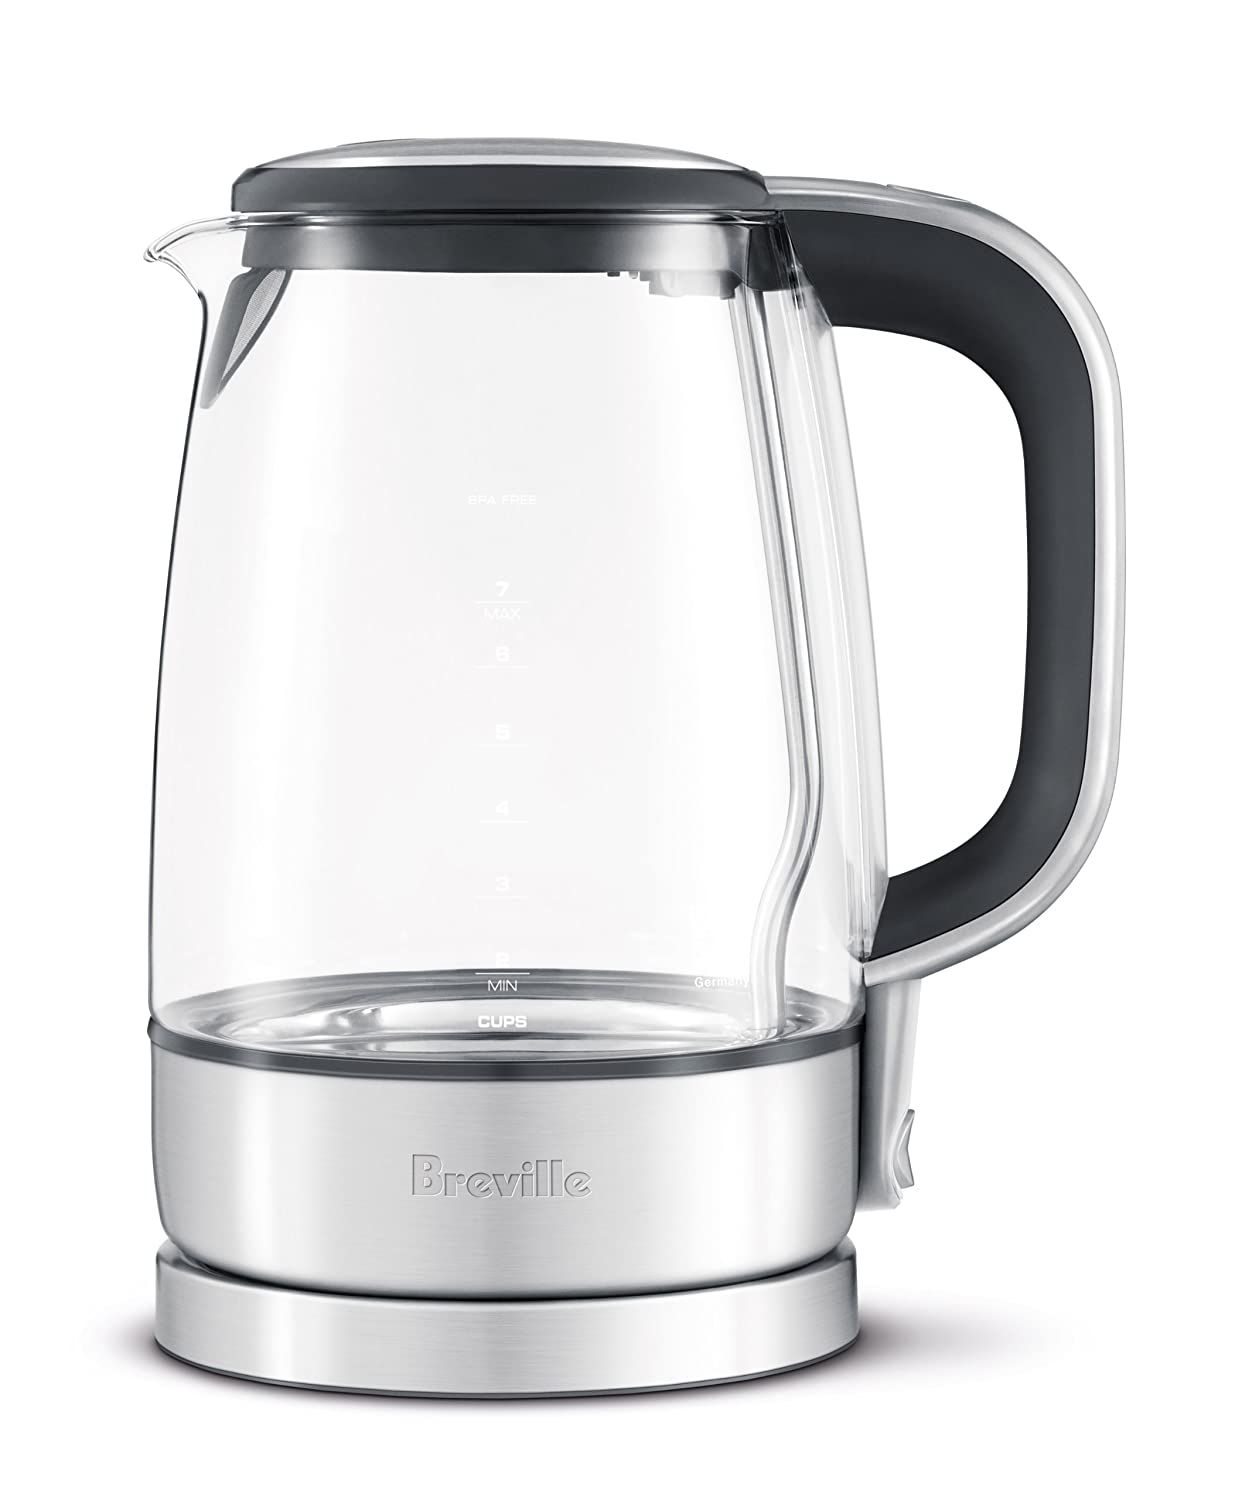 Amazoncom Breville Usa Bke595xl The Crystal Clear Electric Kettle